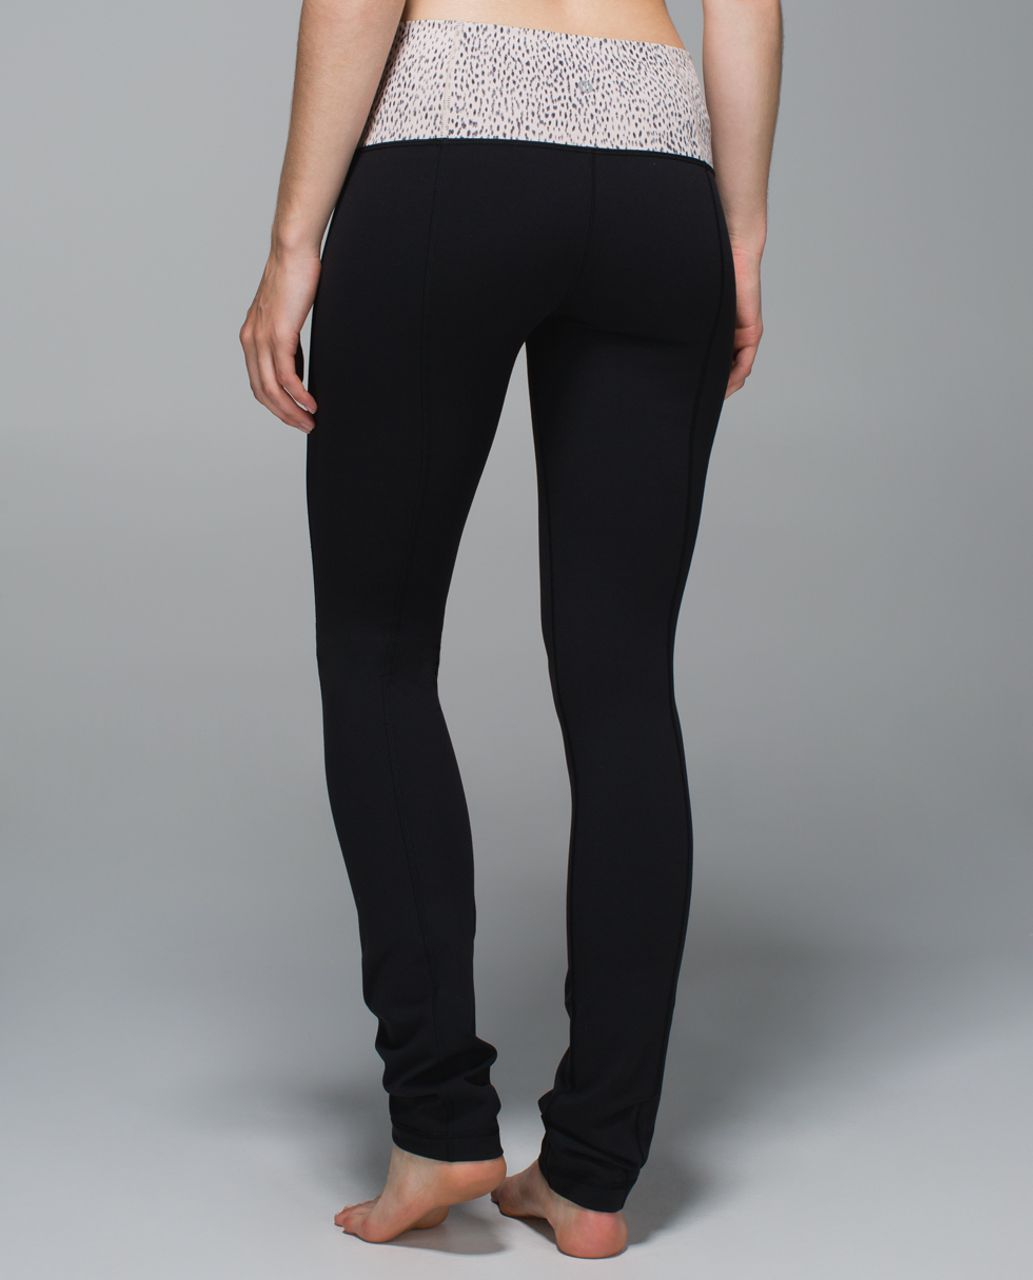 464427151 Lululemon Skinny Groove Pant II  Full-On Luon (Roll Down) - Black   Dottie  Dash Grain Black - lulu fanatics